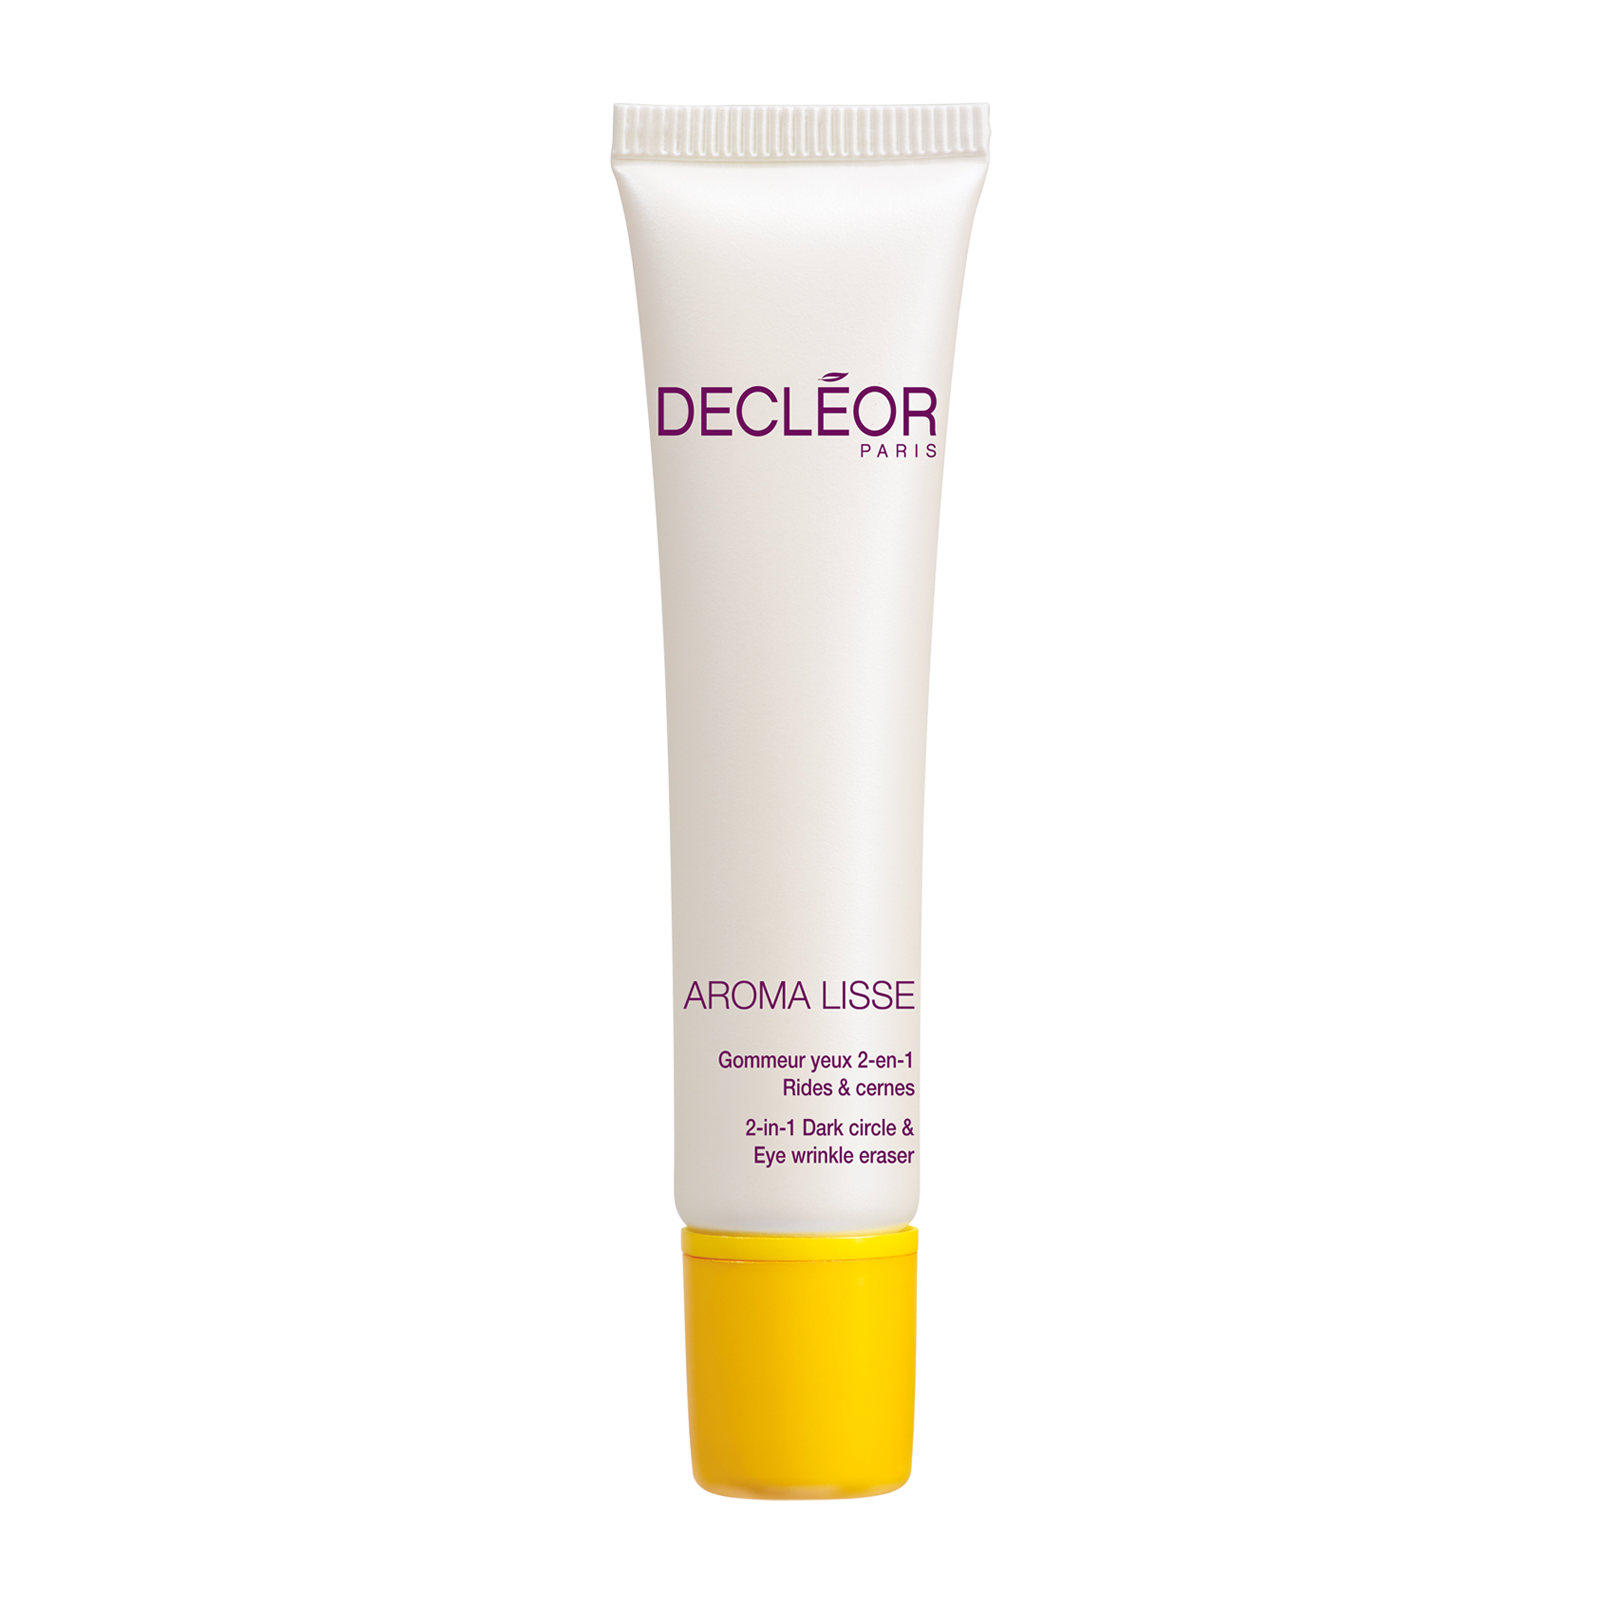 DECLEOR AROMA LISSE 2-IN-1 DARK CIRCLE & EYE WRINKLE ERASER 0.5 OZ